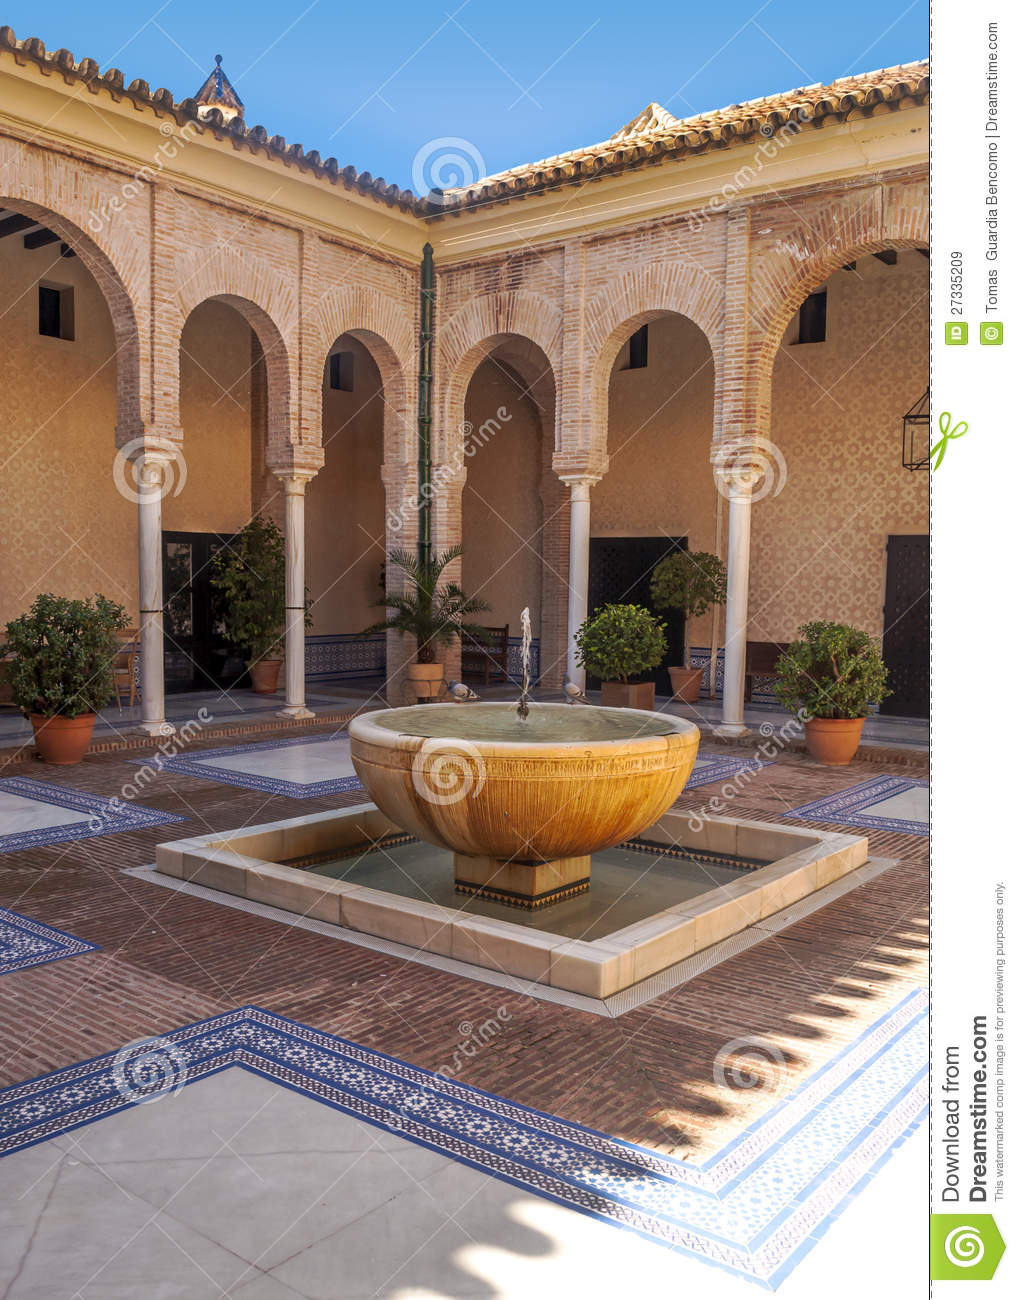 Cour andalouse image stock image du architecture for Architecture andalouse